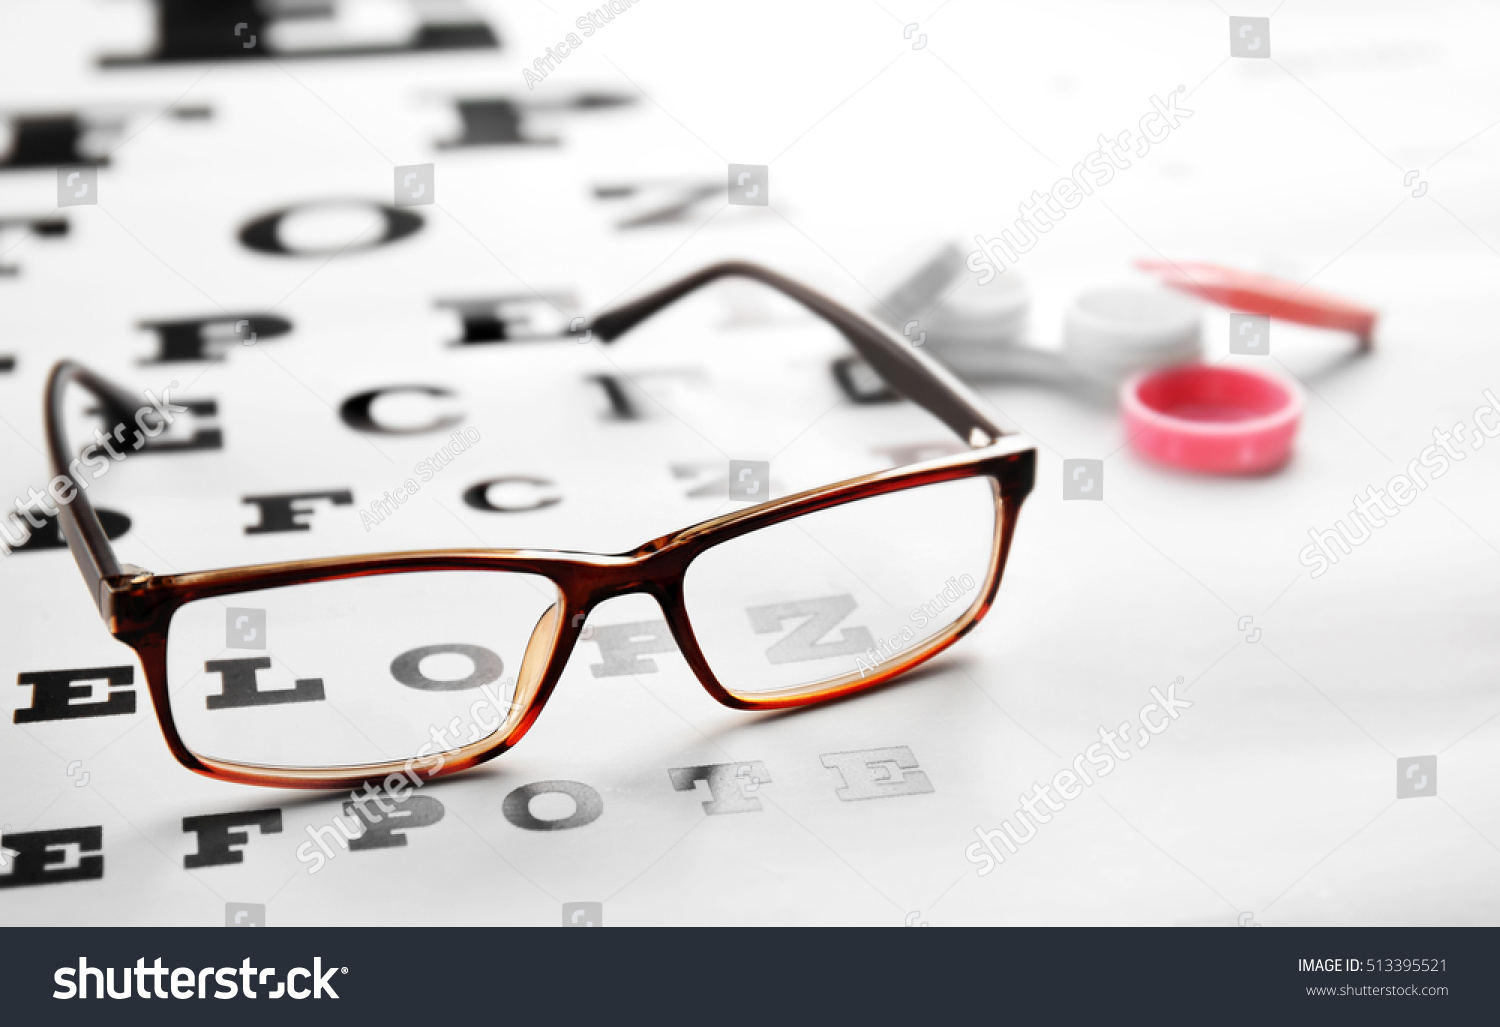 Glasses lying on eye test chart stock photo 513395521 shutterstock glasses lying on eye test chart close up view healthy eyes concept geenschuldenfo Image collections